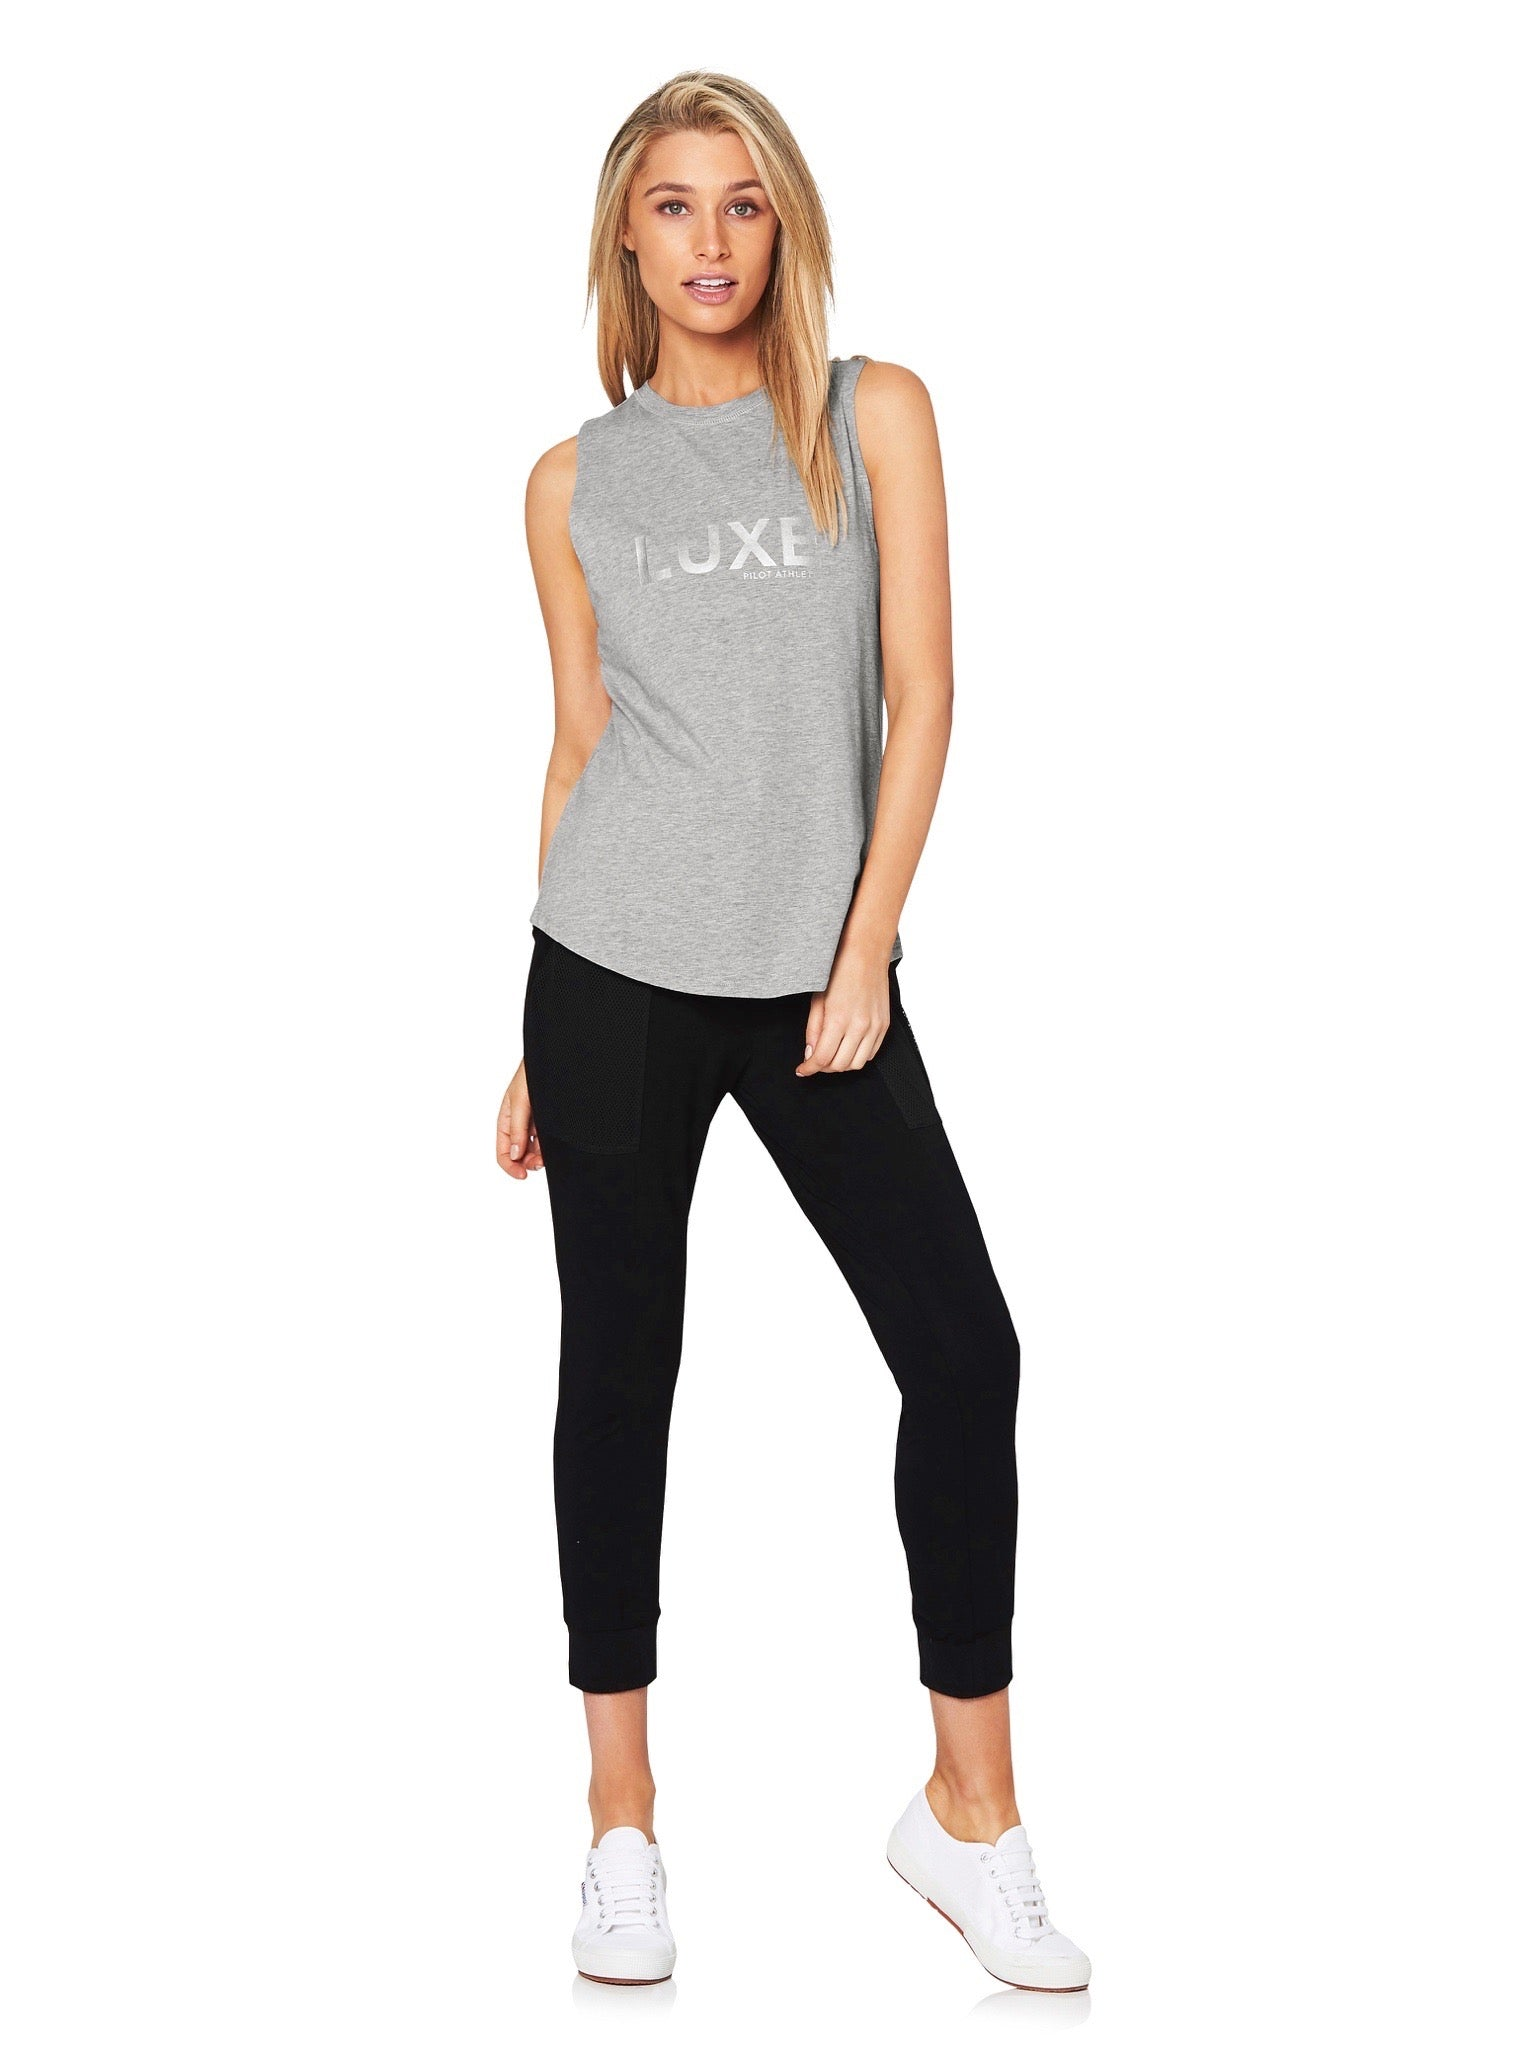 HARKNESS LUXE MUSCLE TEE - GREY